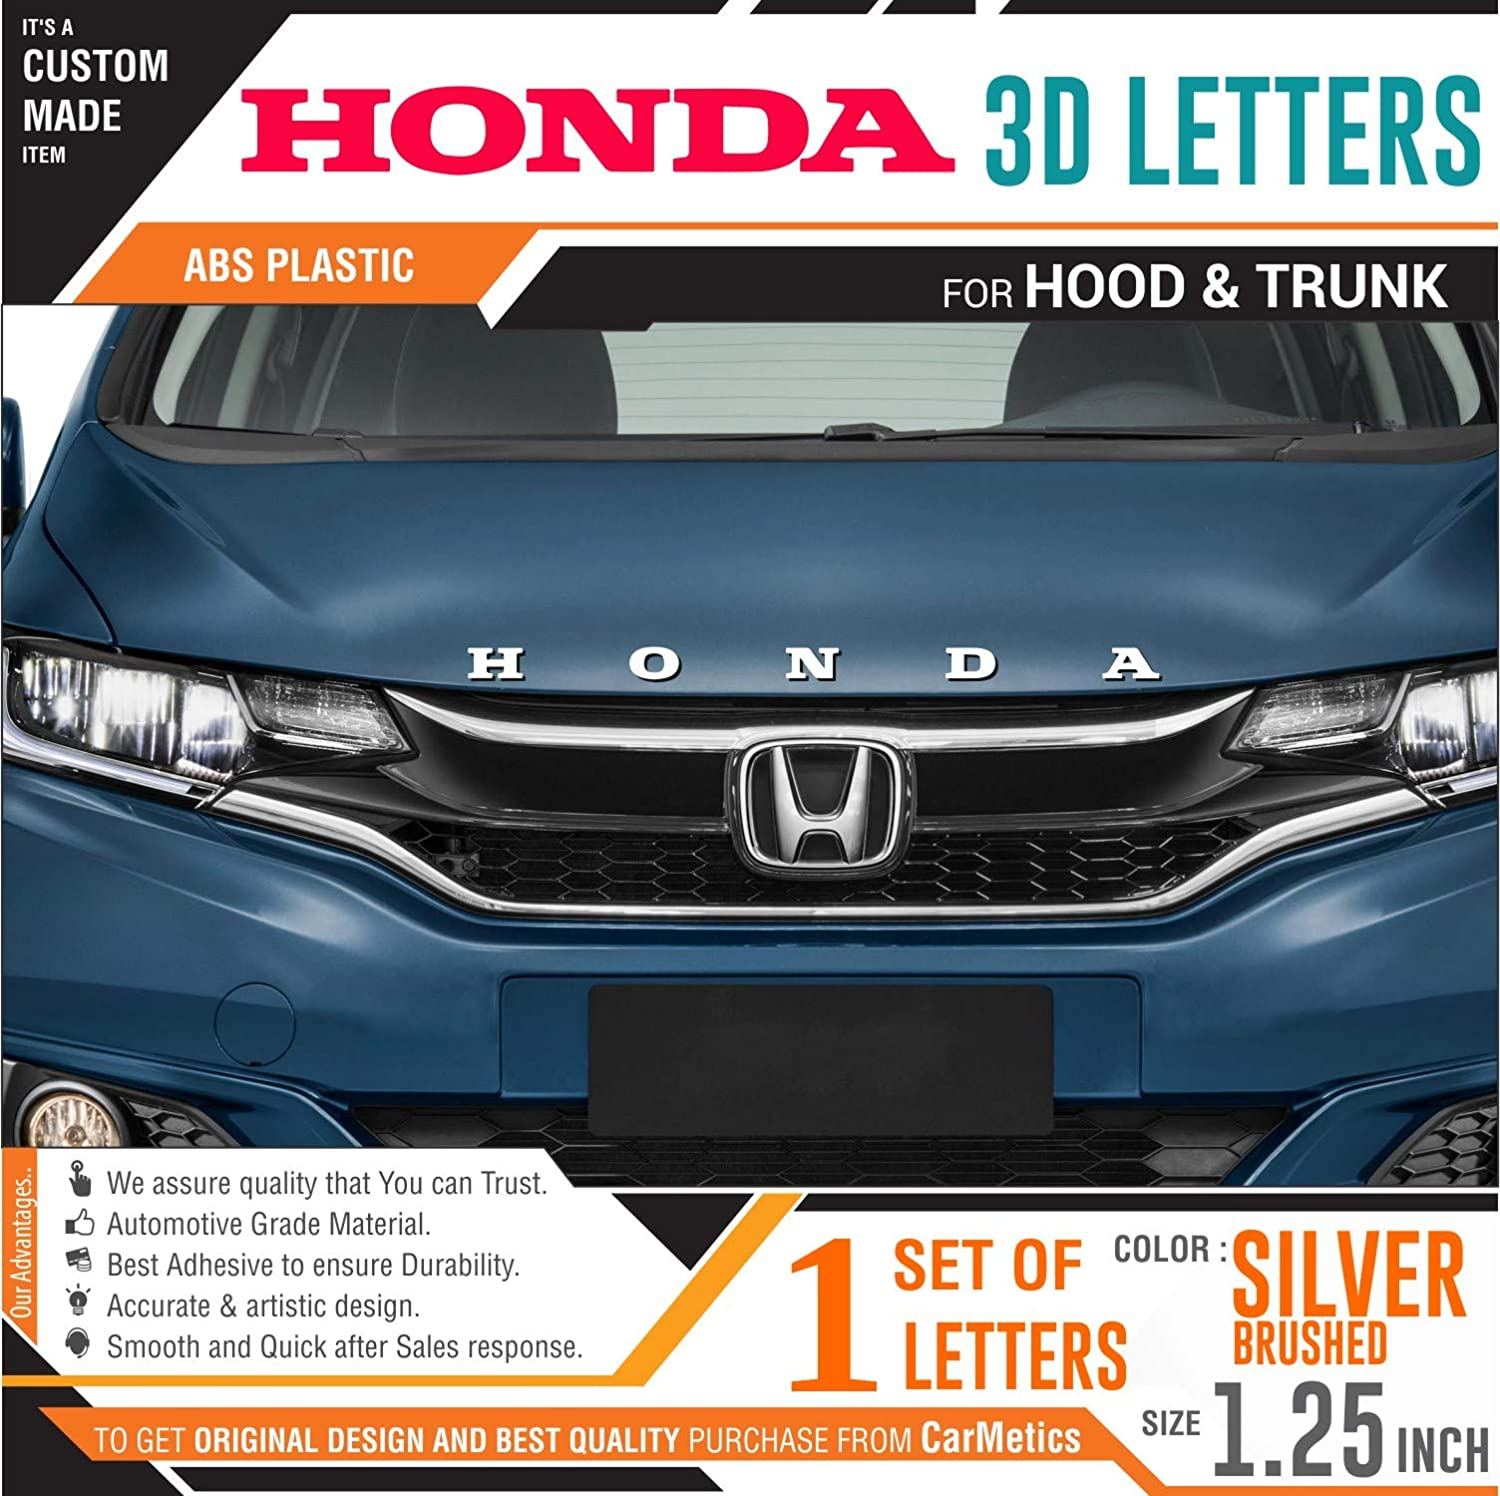 Carmetics honda 3d letters for honda amaze 2018 silver color 1 set honda 3d car sticker honda 3d letters honda logo emblem amazon in car motorbike